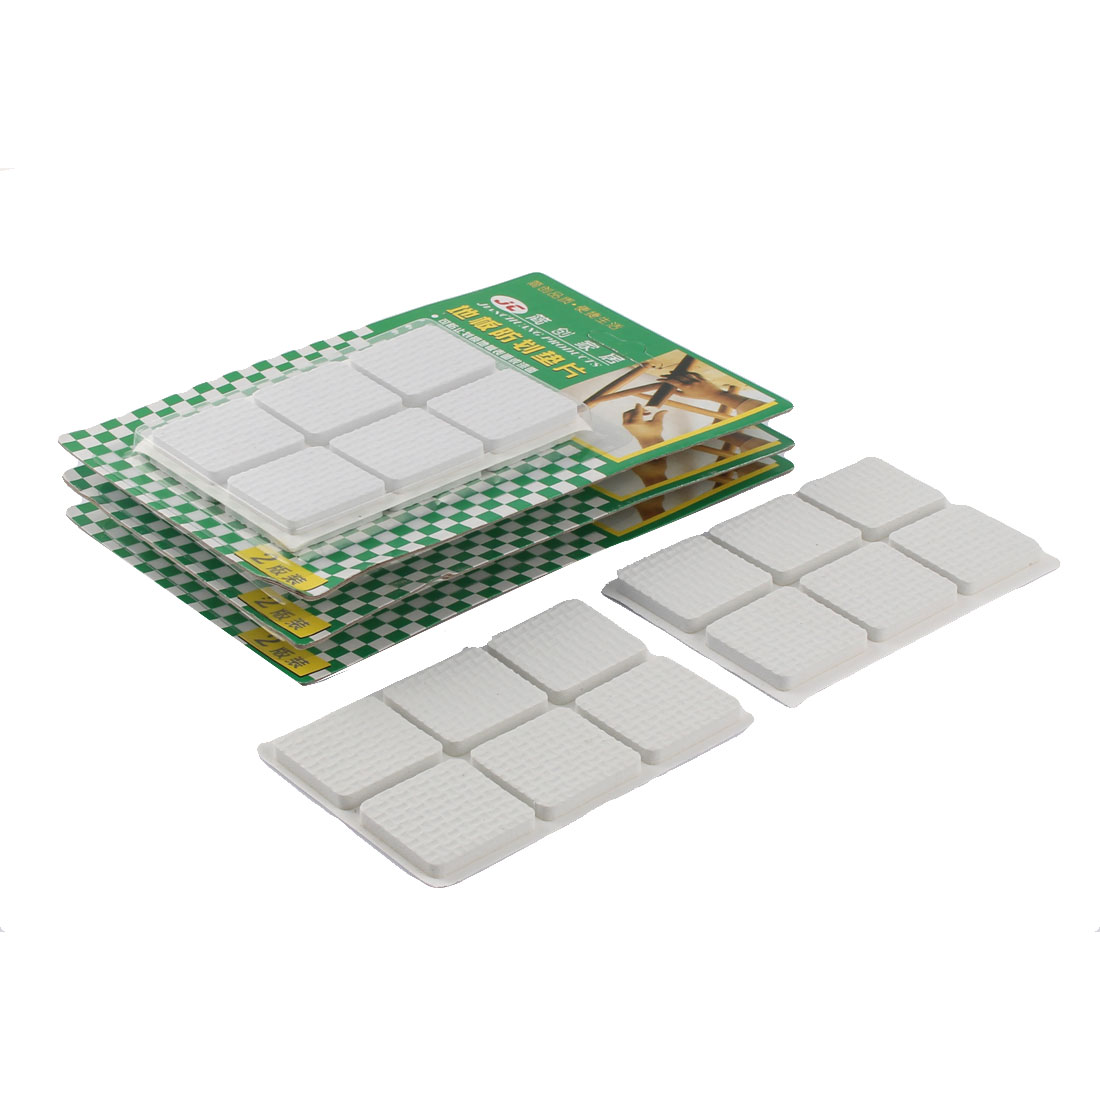 Floor EVA Square Anti Slip Table Chair Furniture Feet Pads Cover Protector White 30 x 30mm 48pcs